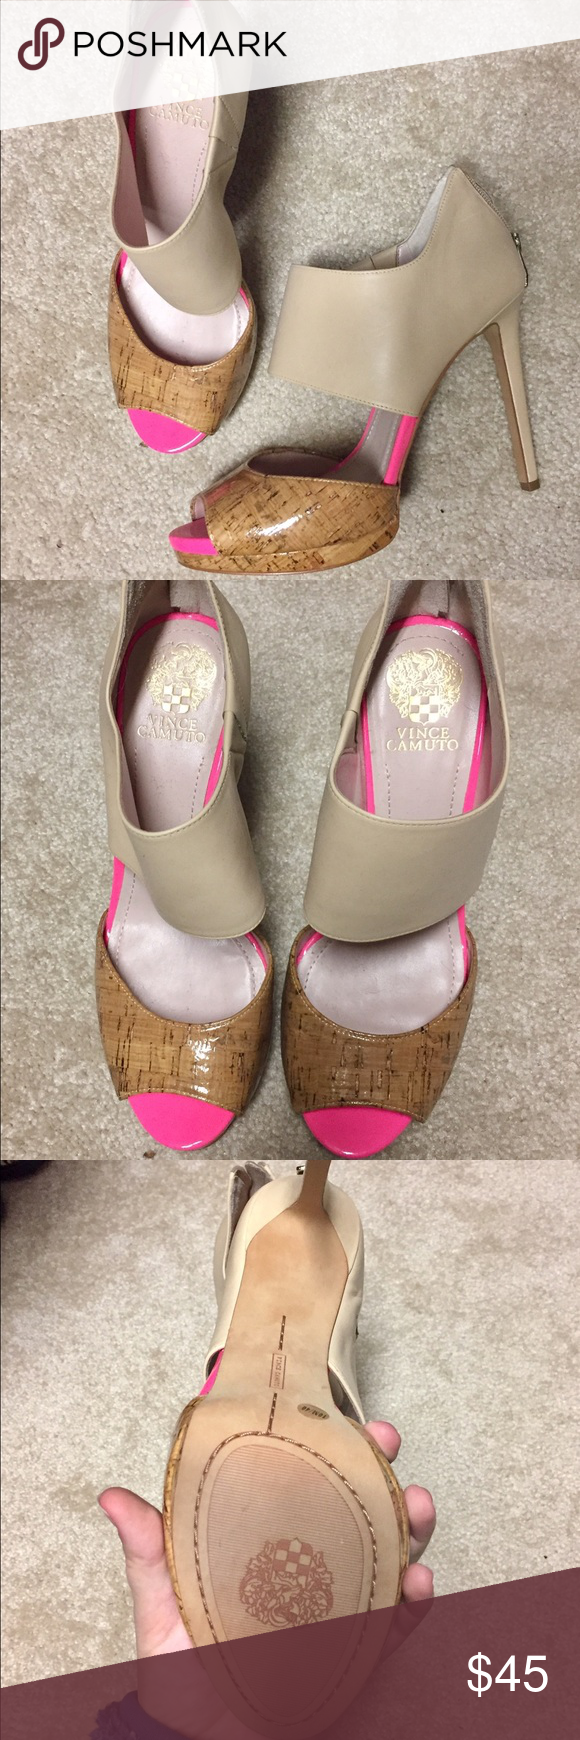 Vince Camuto Tan & Hot Pink Heels Very lightly used (worn once) size 10 Vince Camuto heels with hot pink accent. About a 3.5 inch heel. Vince Camuto Shoes Heels